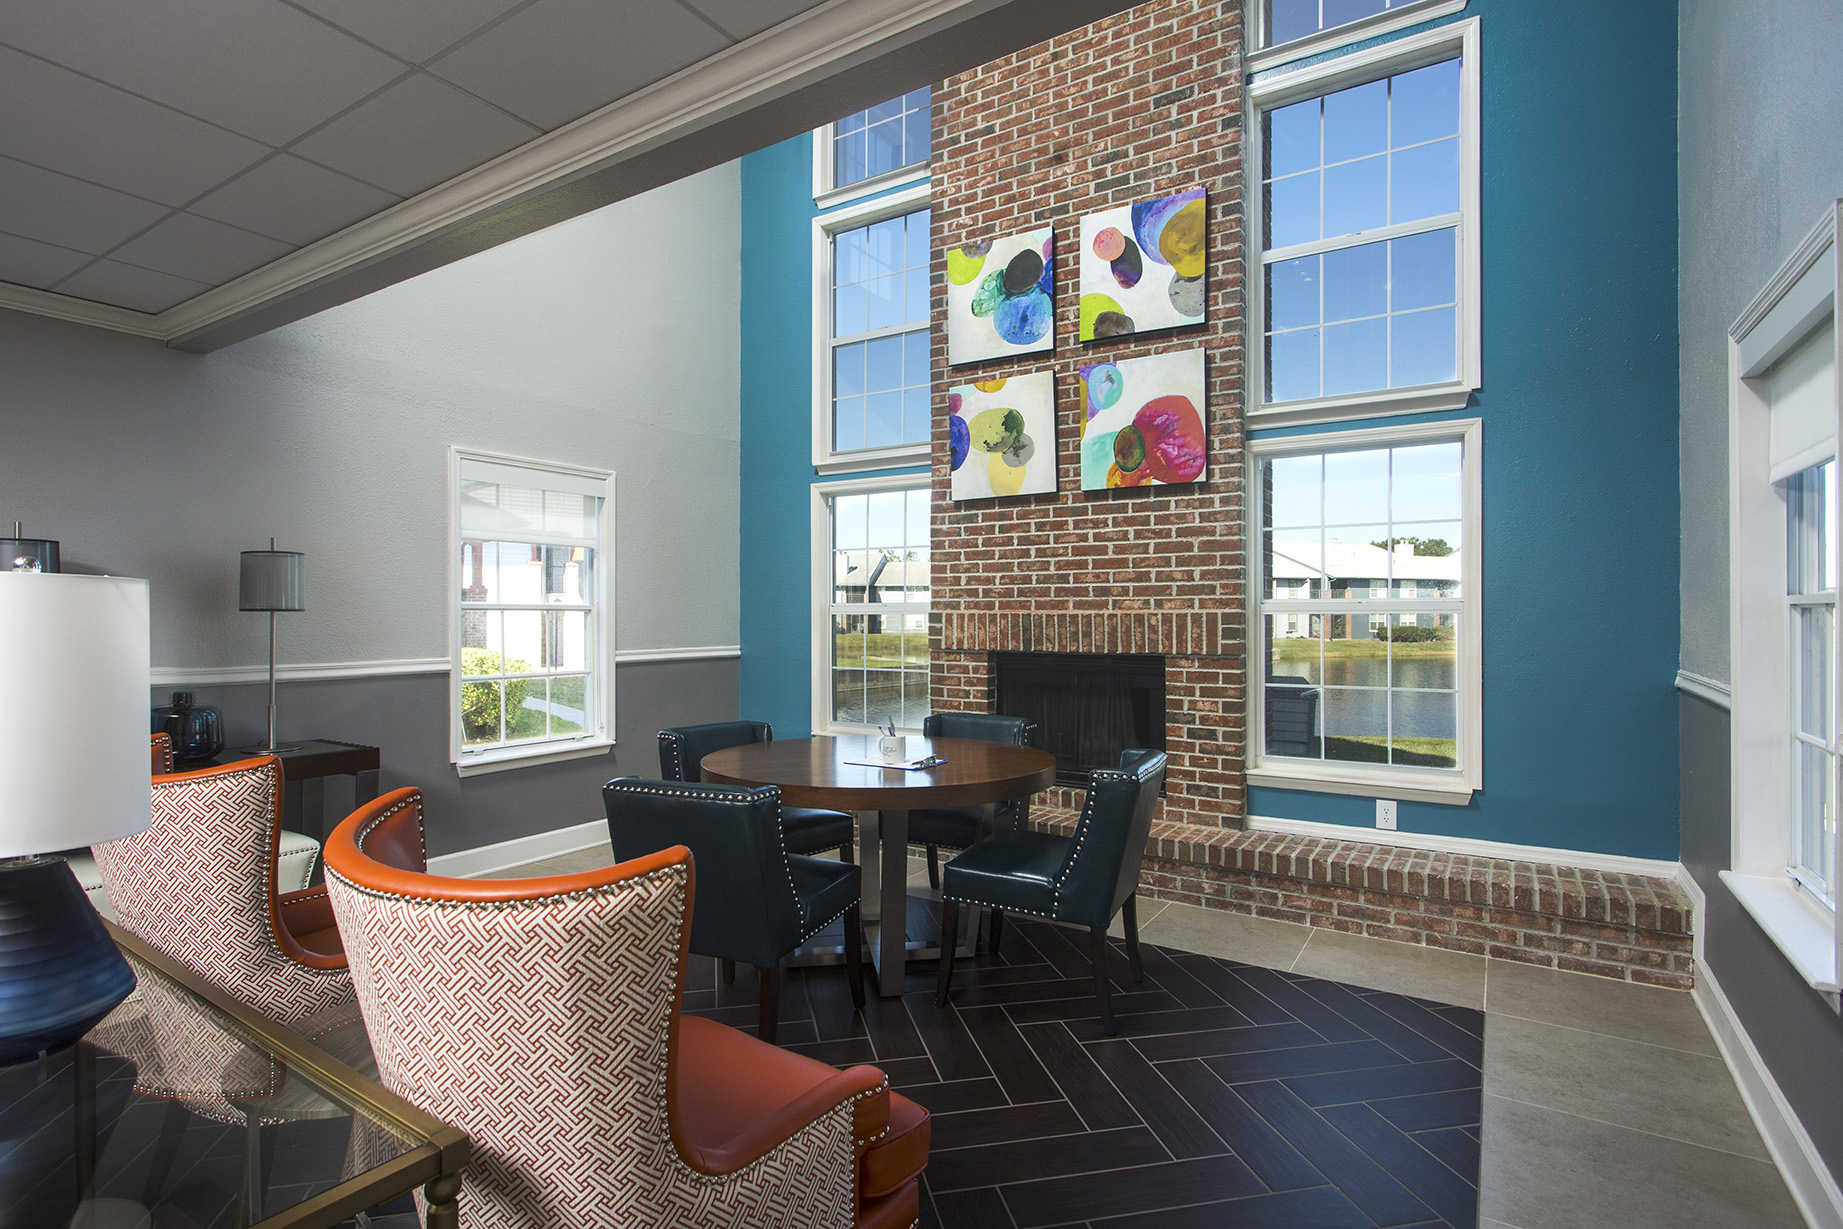 CharlestonLandings-Rental-Apartment-Brandon-Florida-Media-Center2.jpg